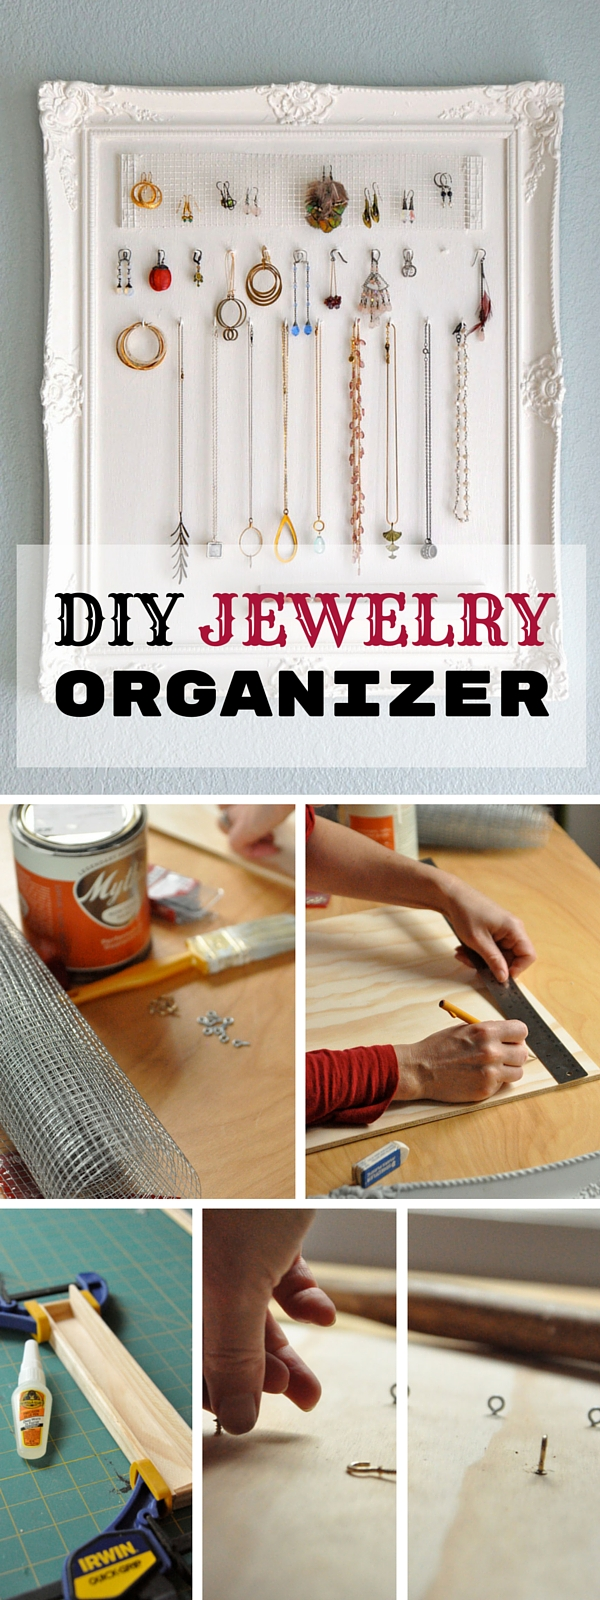 Check out the tutorial:  Jewelry Organizer